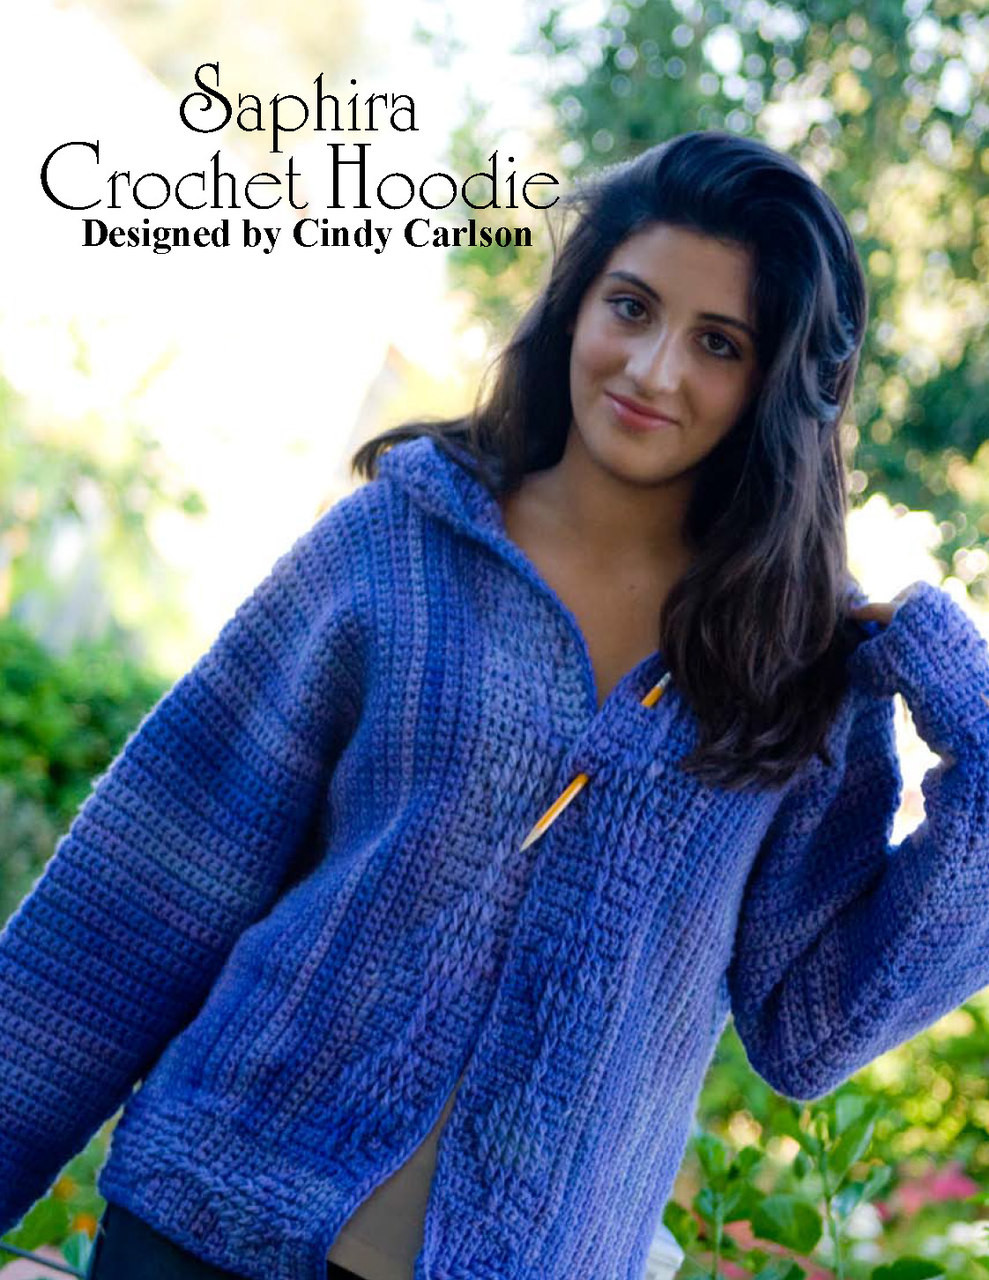 Saphira Crochet Hoodie Pattern Whimsical Yarn